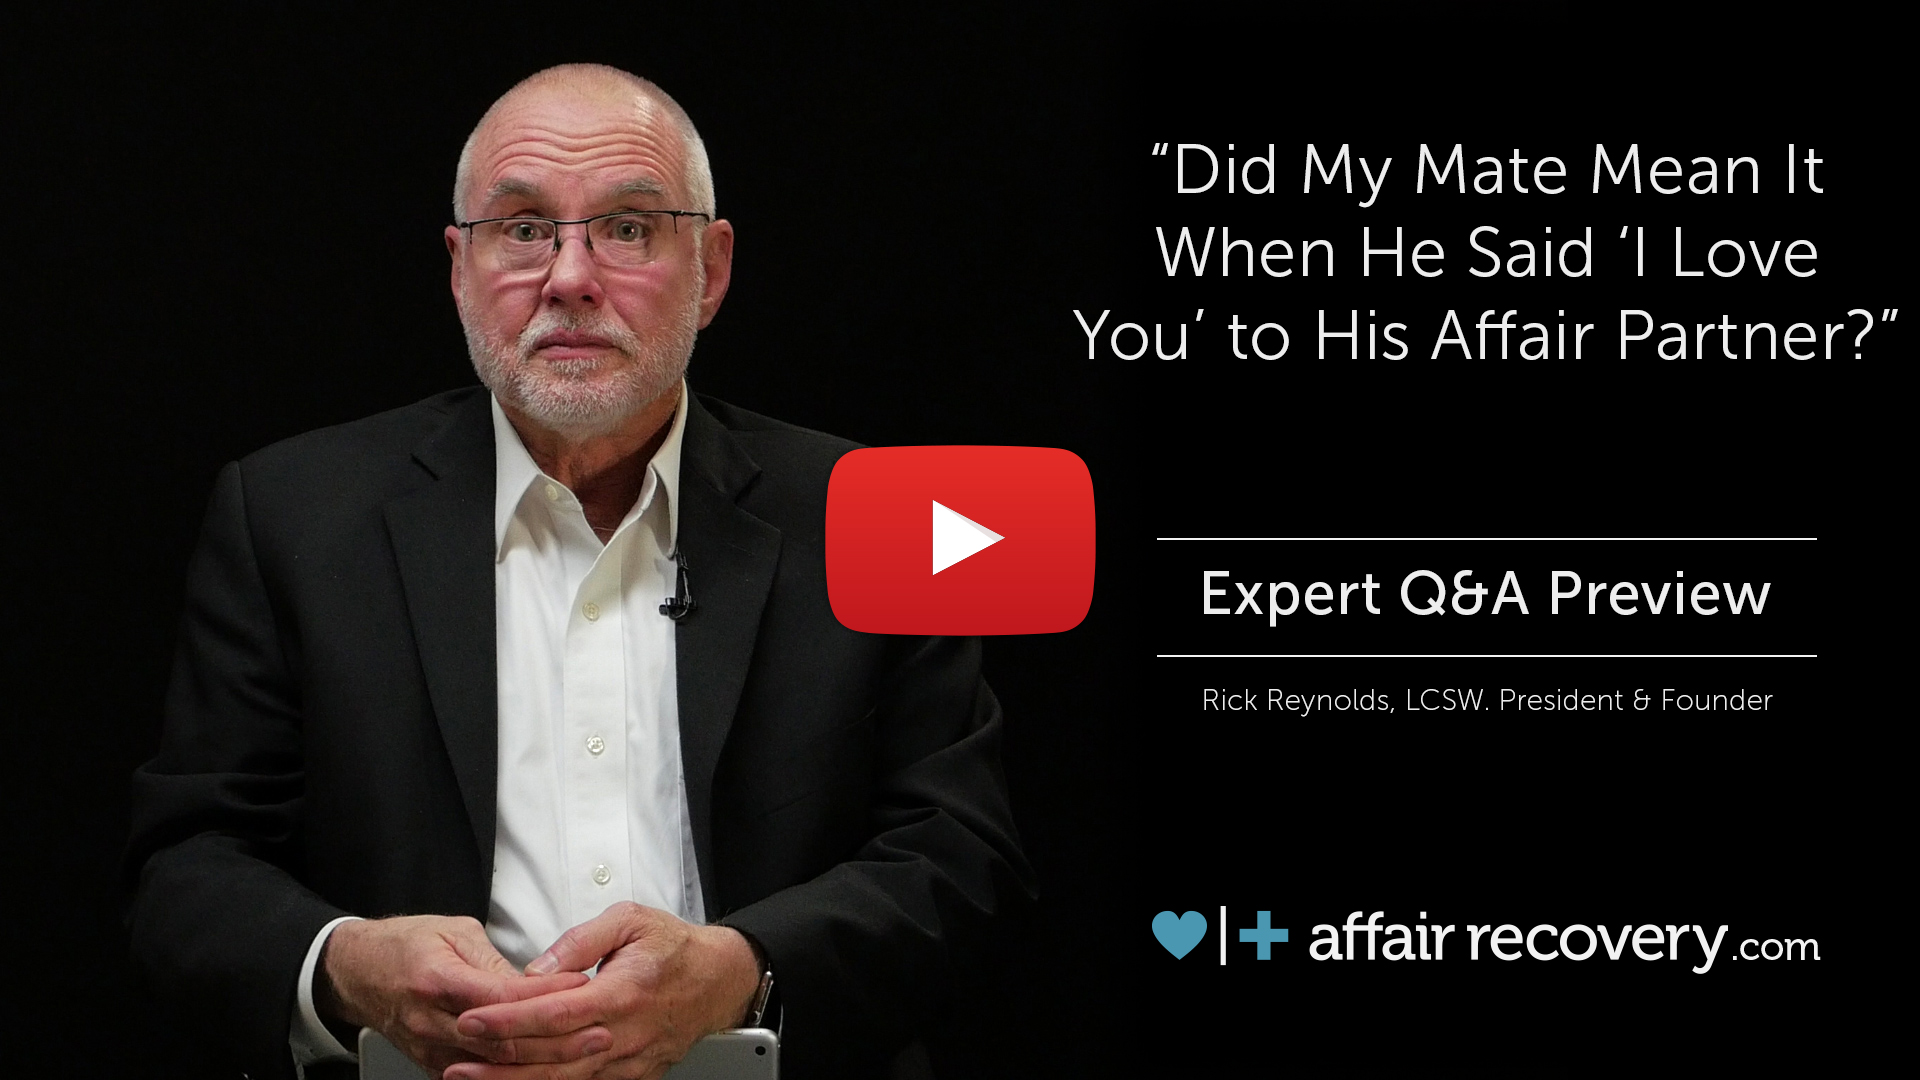 Expert Q&A Preview - Did My Mate Mean it When He Said I Love You to His Affair Partner?